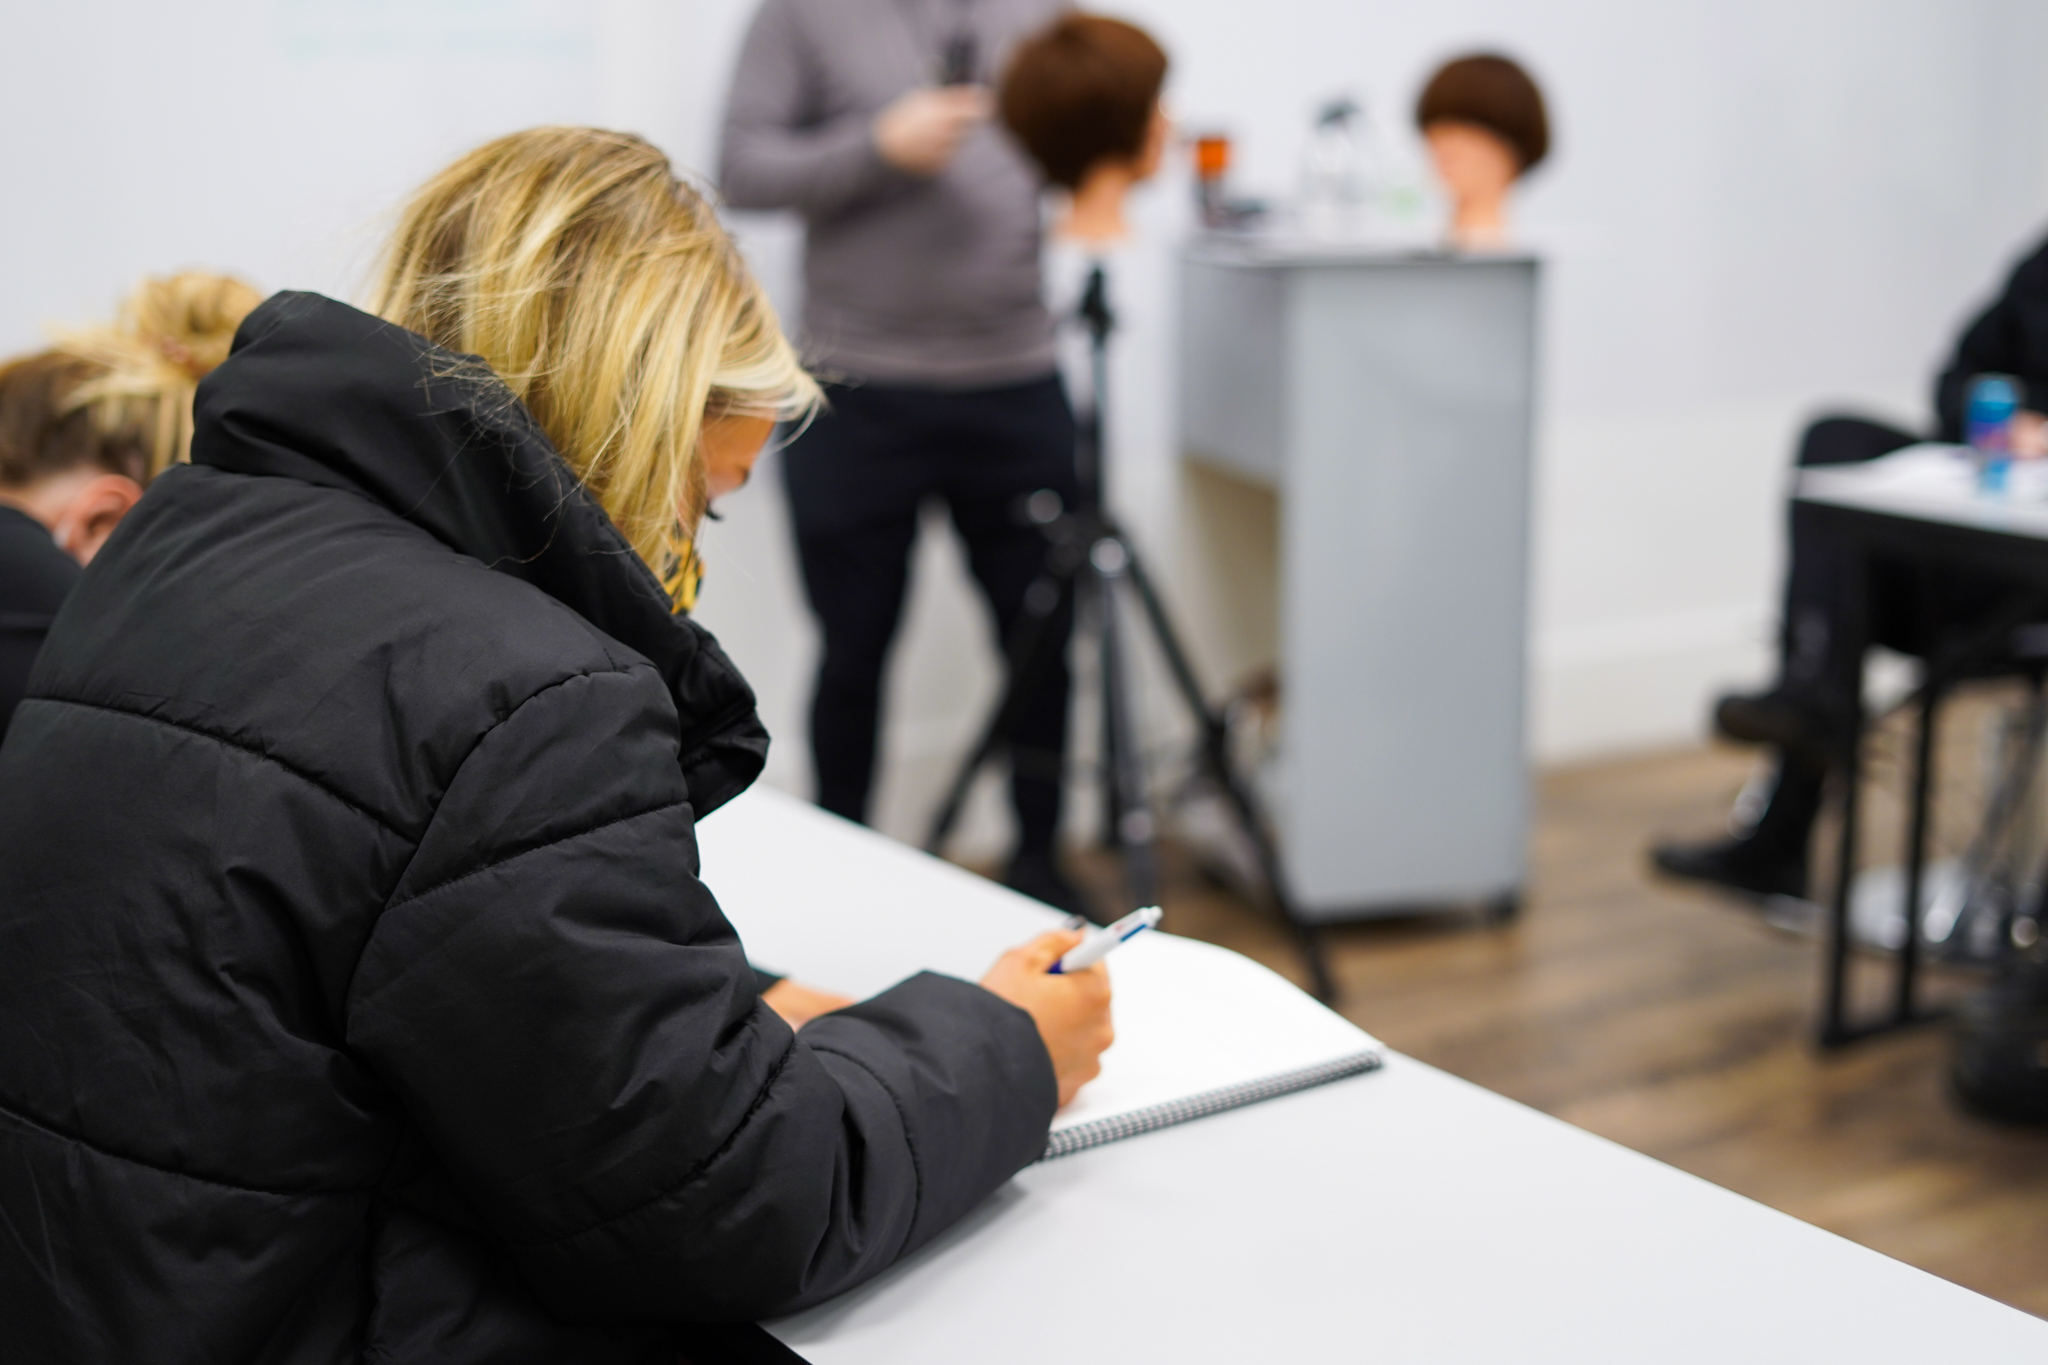 woman taking notes in class at collectiv academy